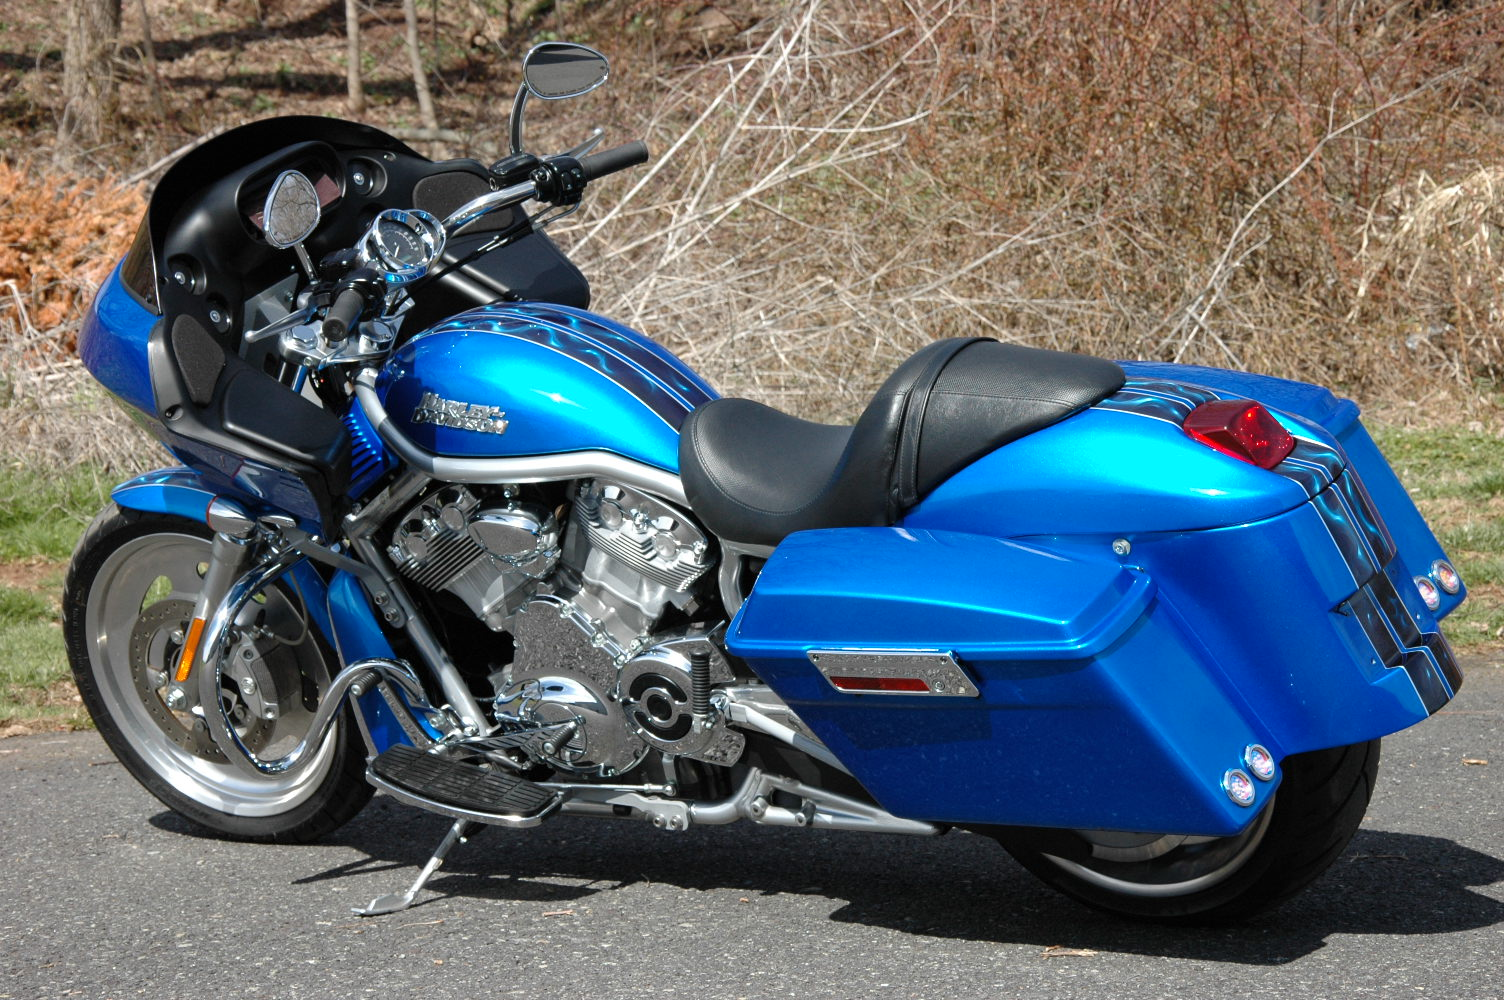 Baggers For Sale On Craigslist Autos Post